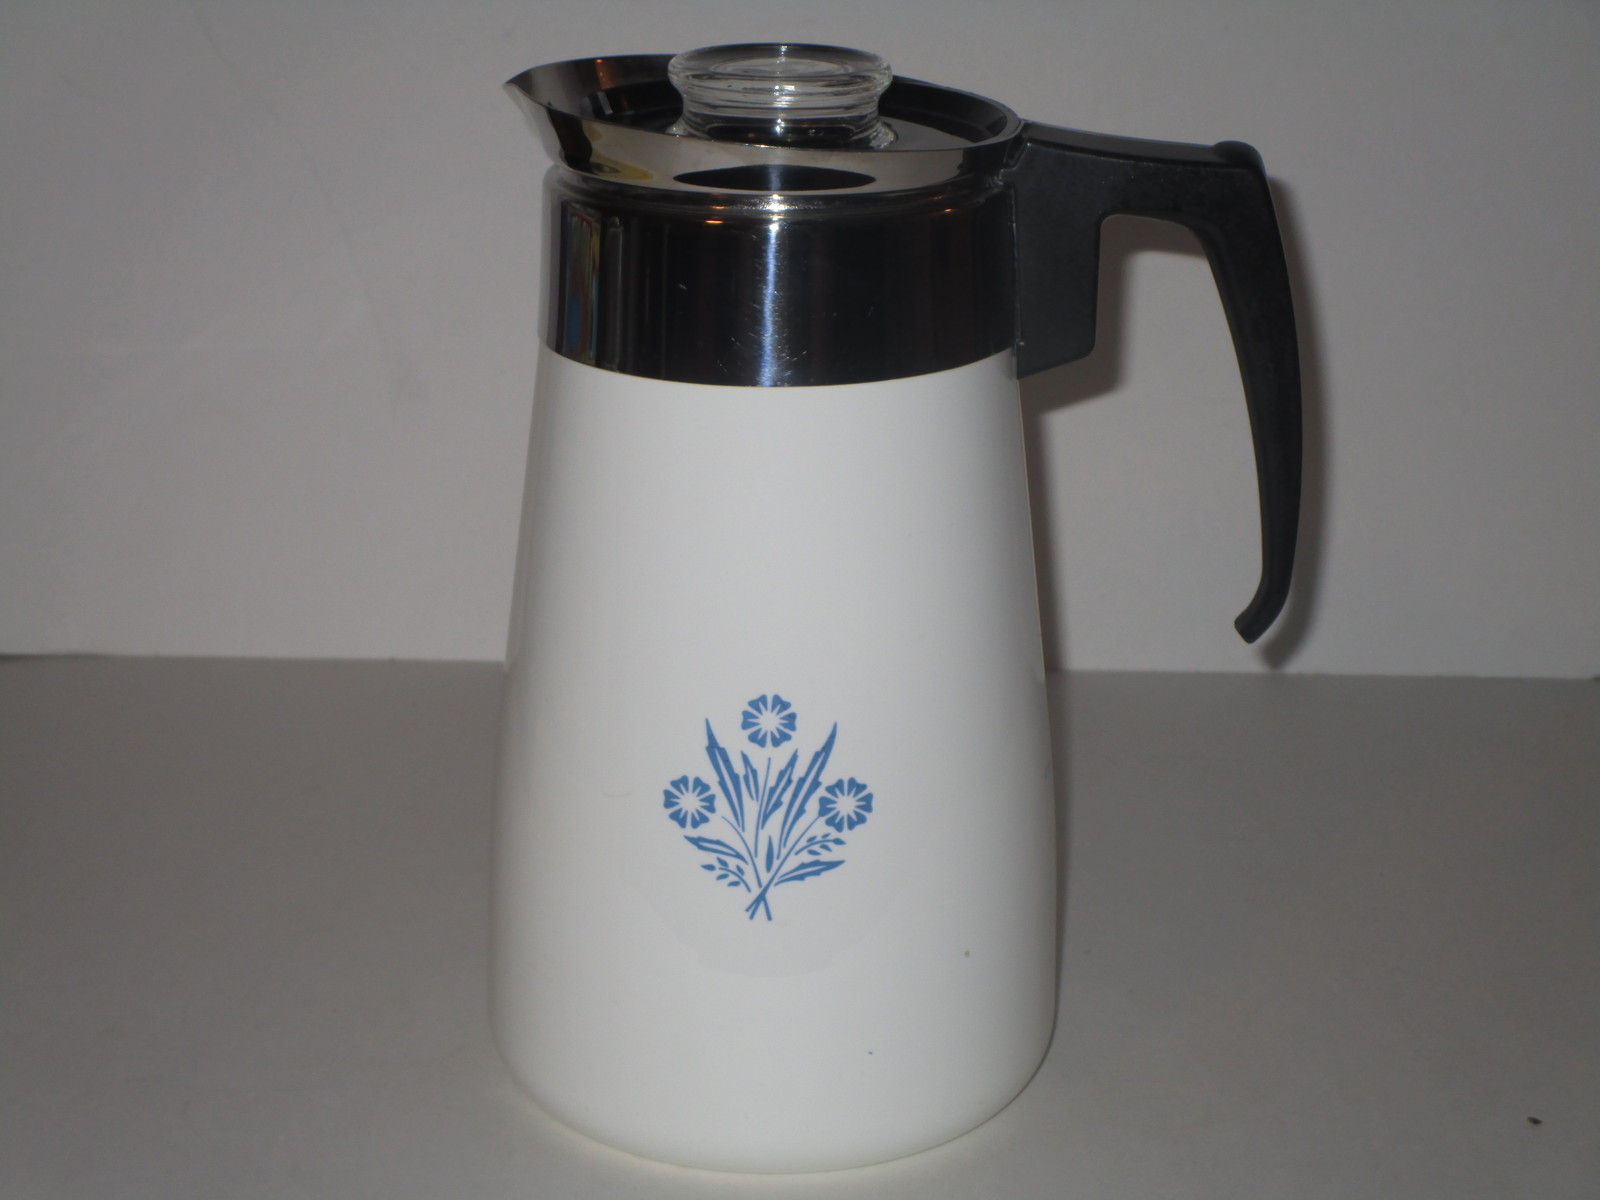 Vintage corning ware blue cornflower coffee pot 9 cup for Best coffee percolator